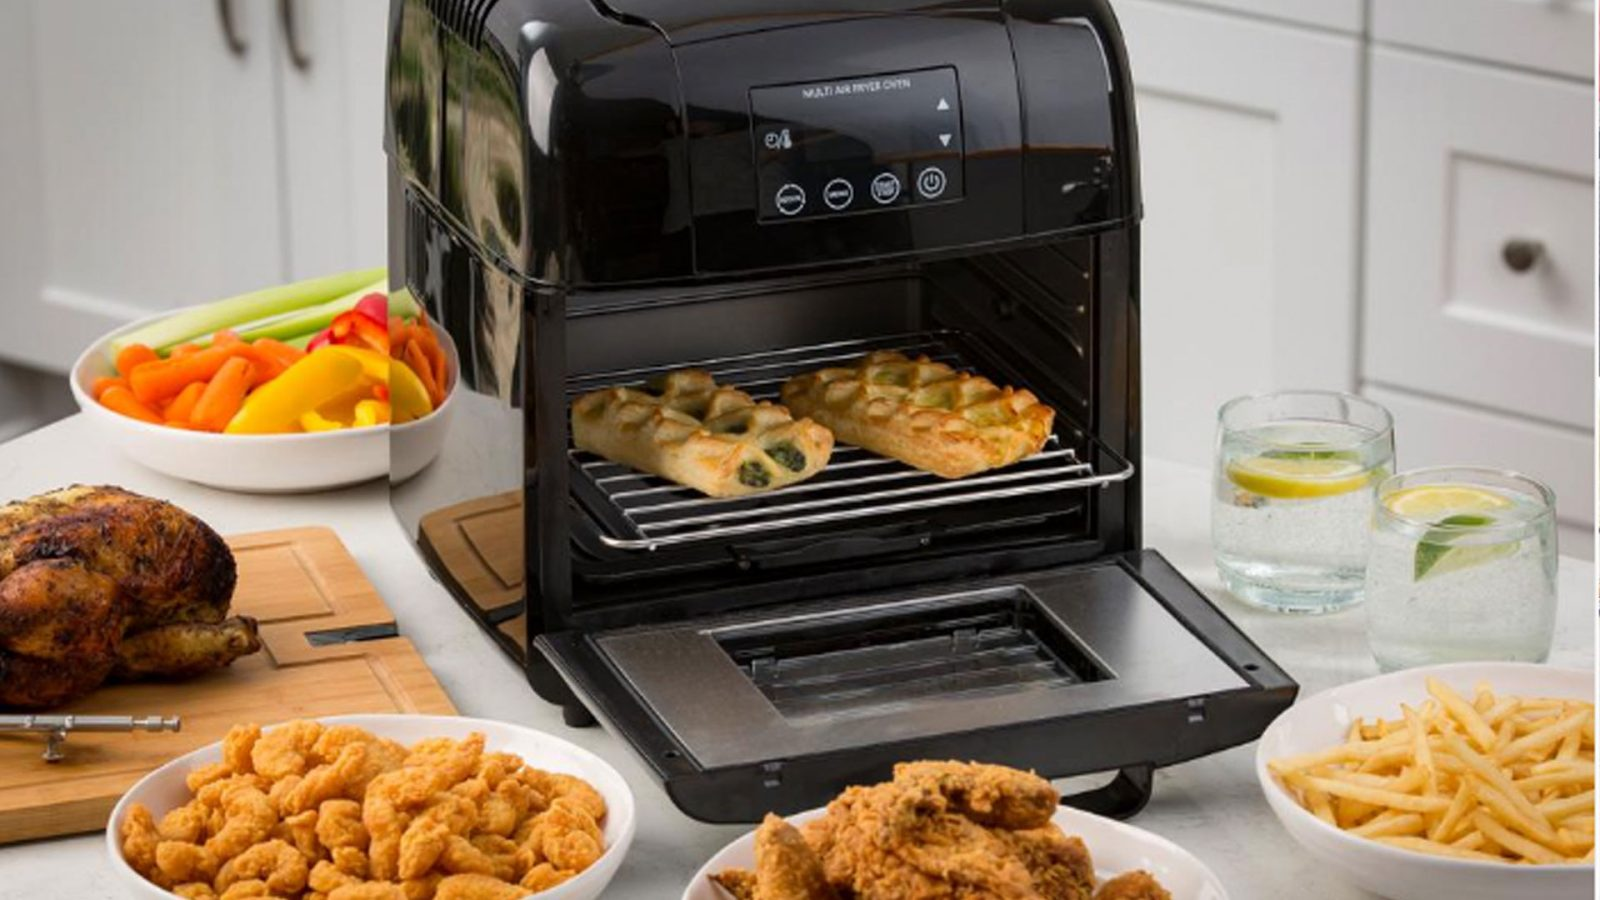 Cook wings, french fries, & more in a 10-quart air fryer: $93.50 (Reg. $160+)